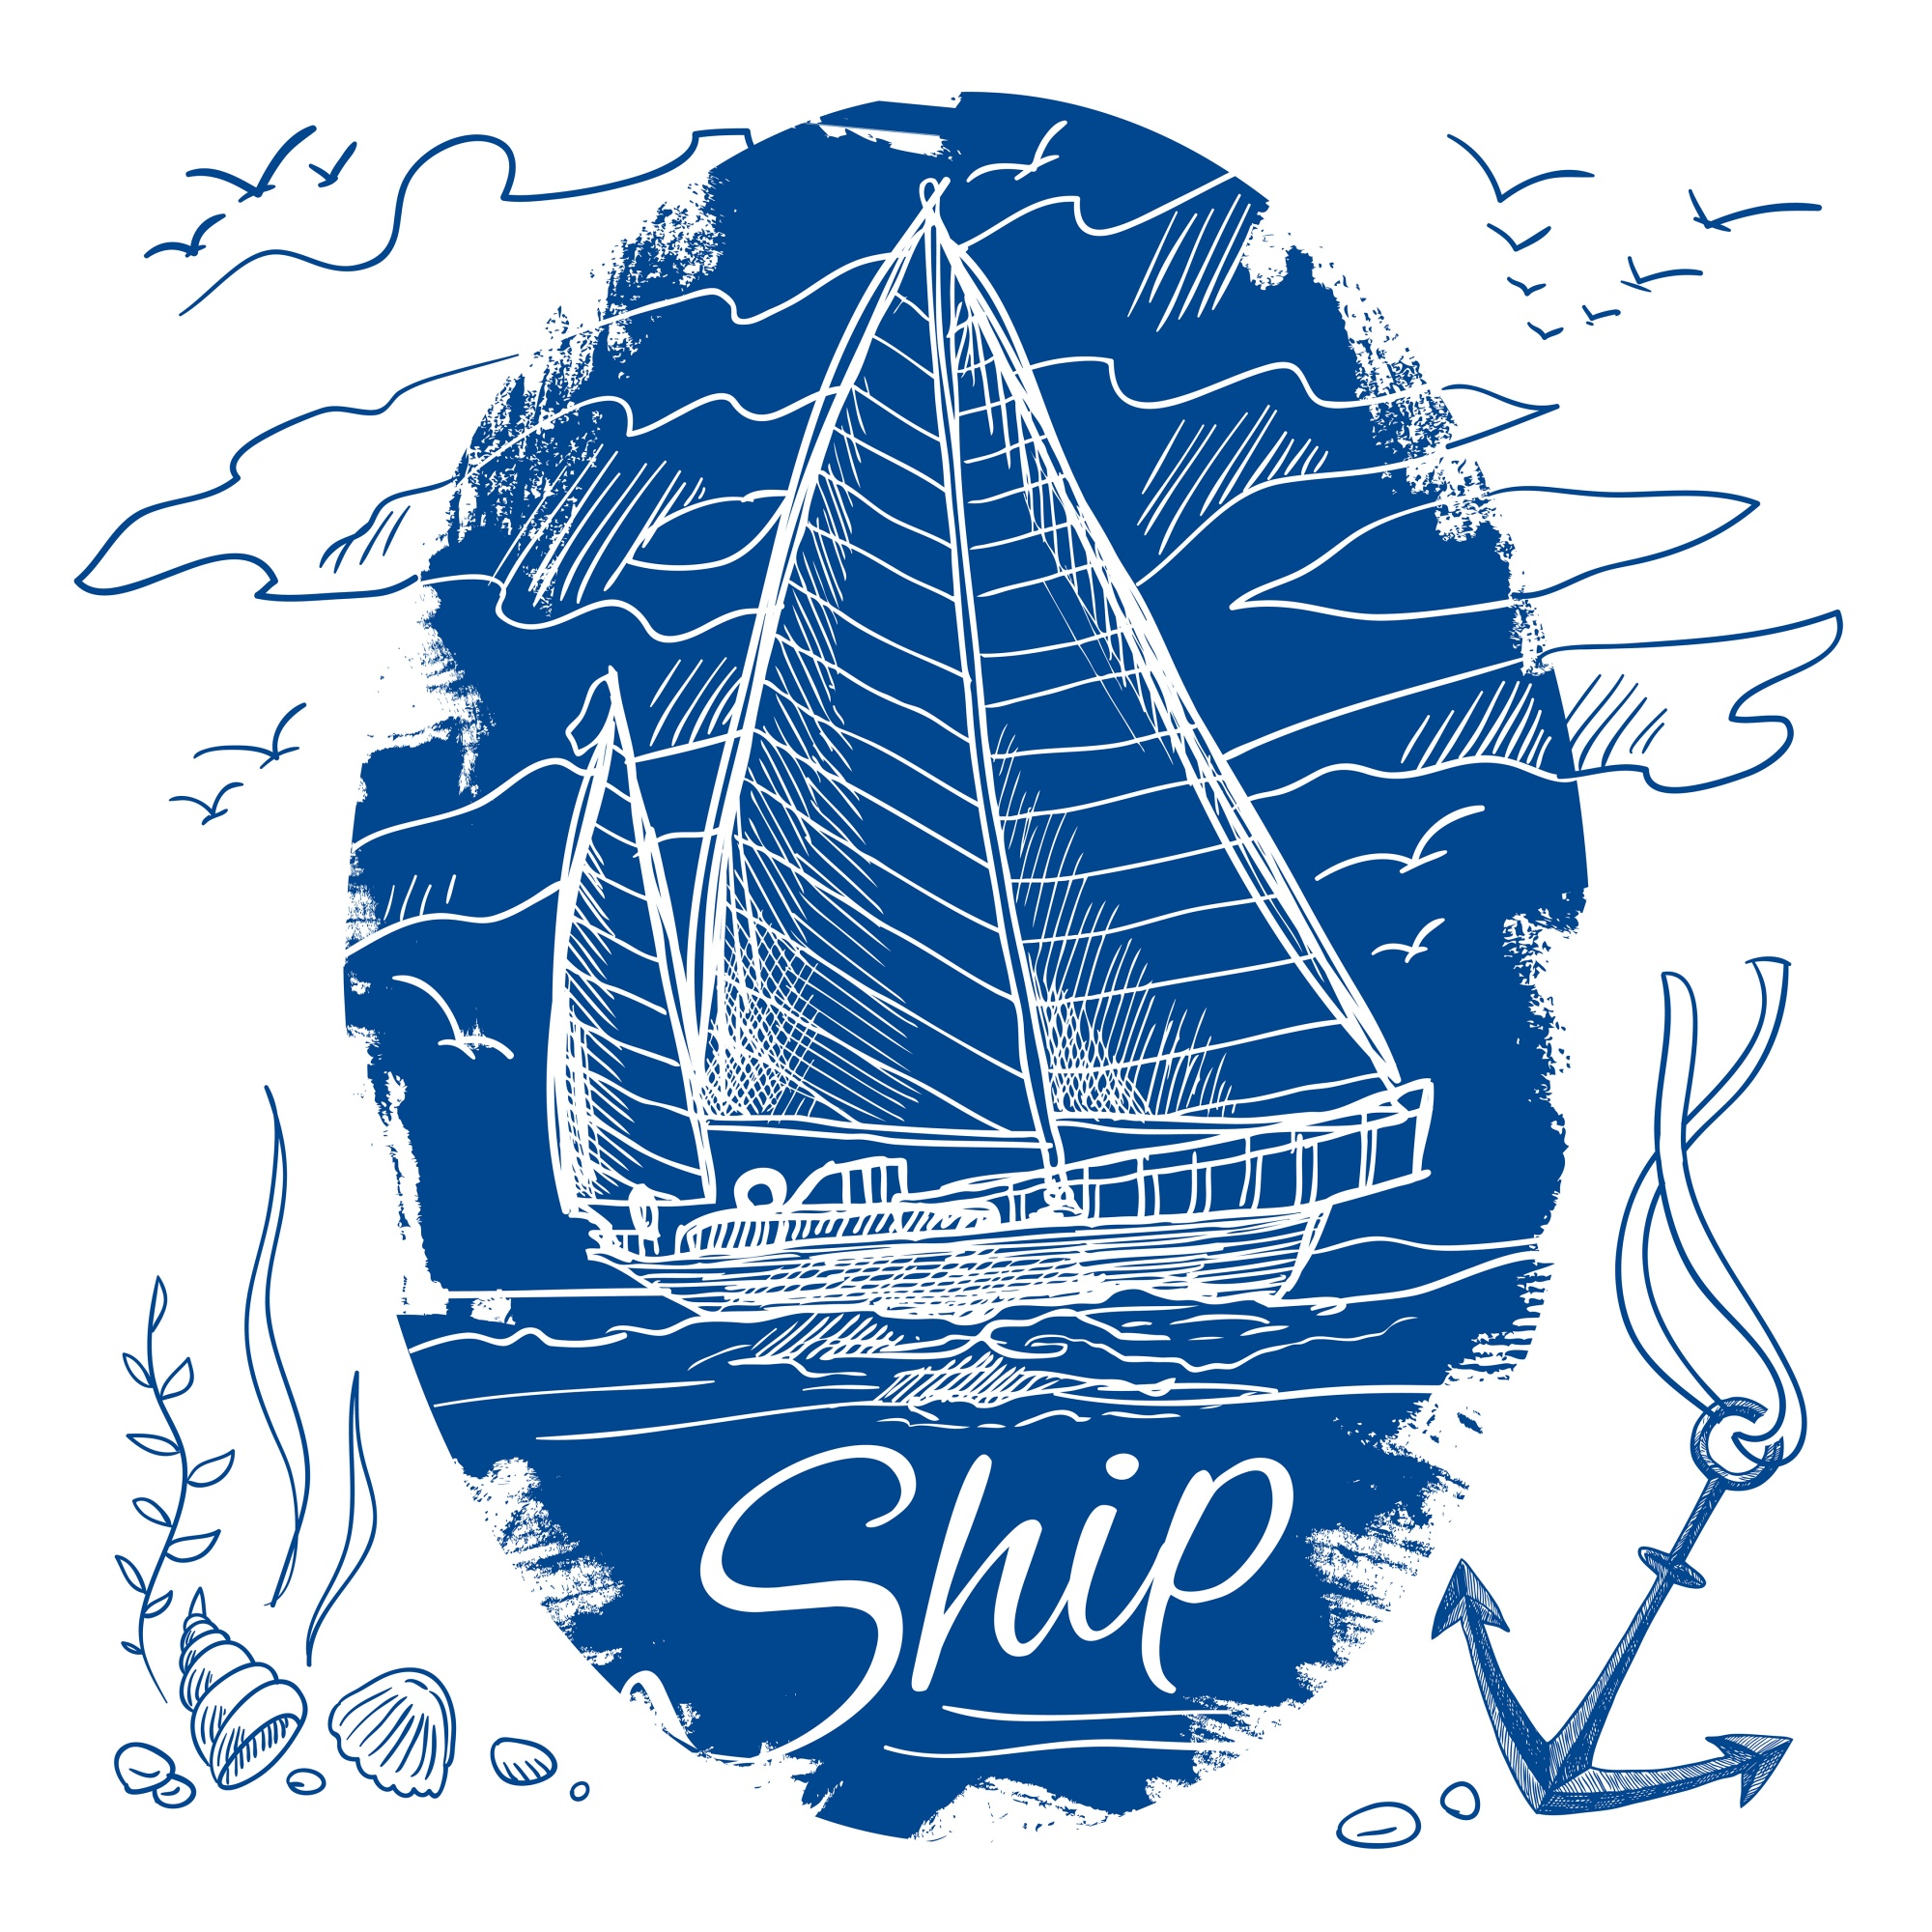 Nautical emblem with blue colored sketch sailing schooner ship and sea background vector illustration